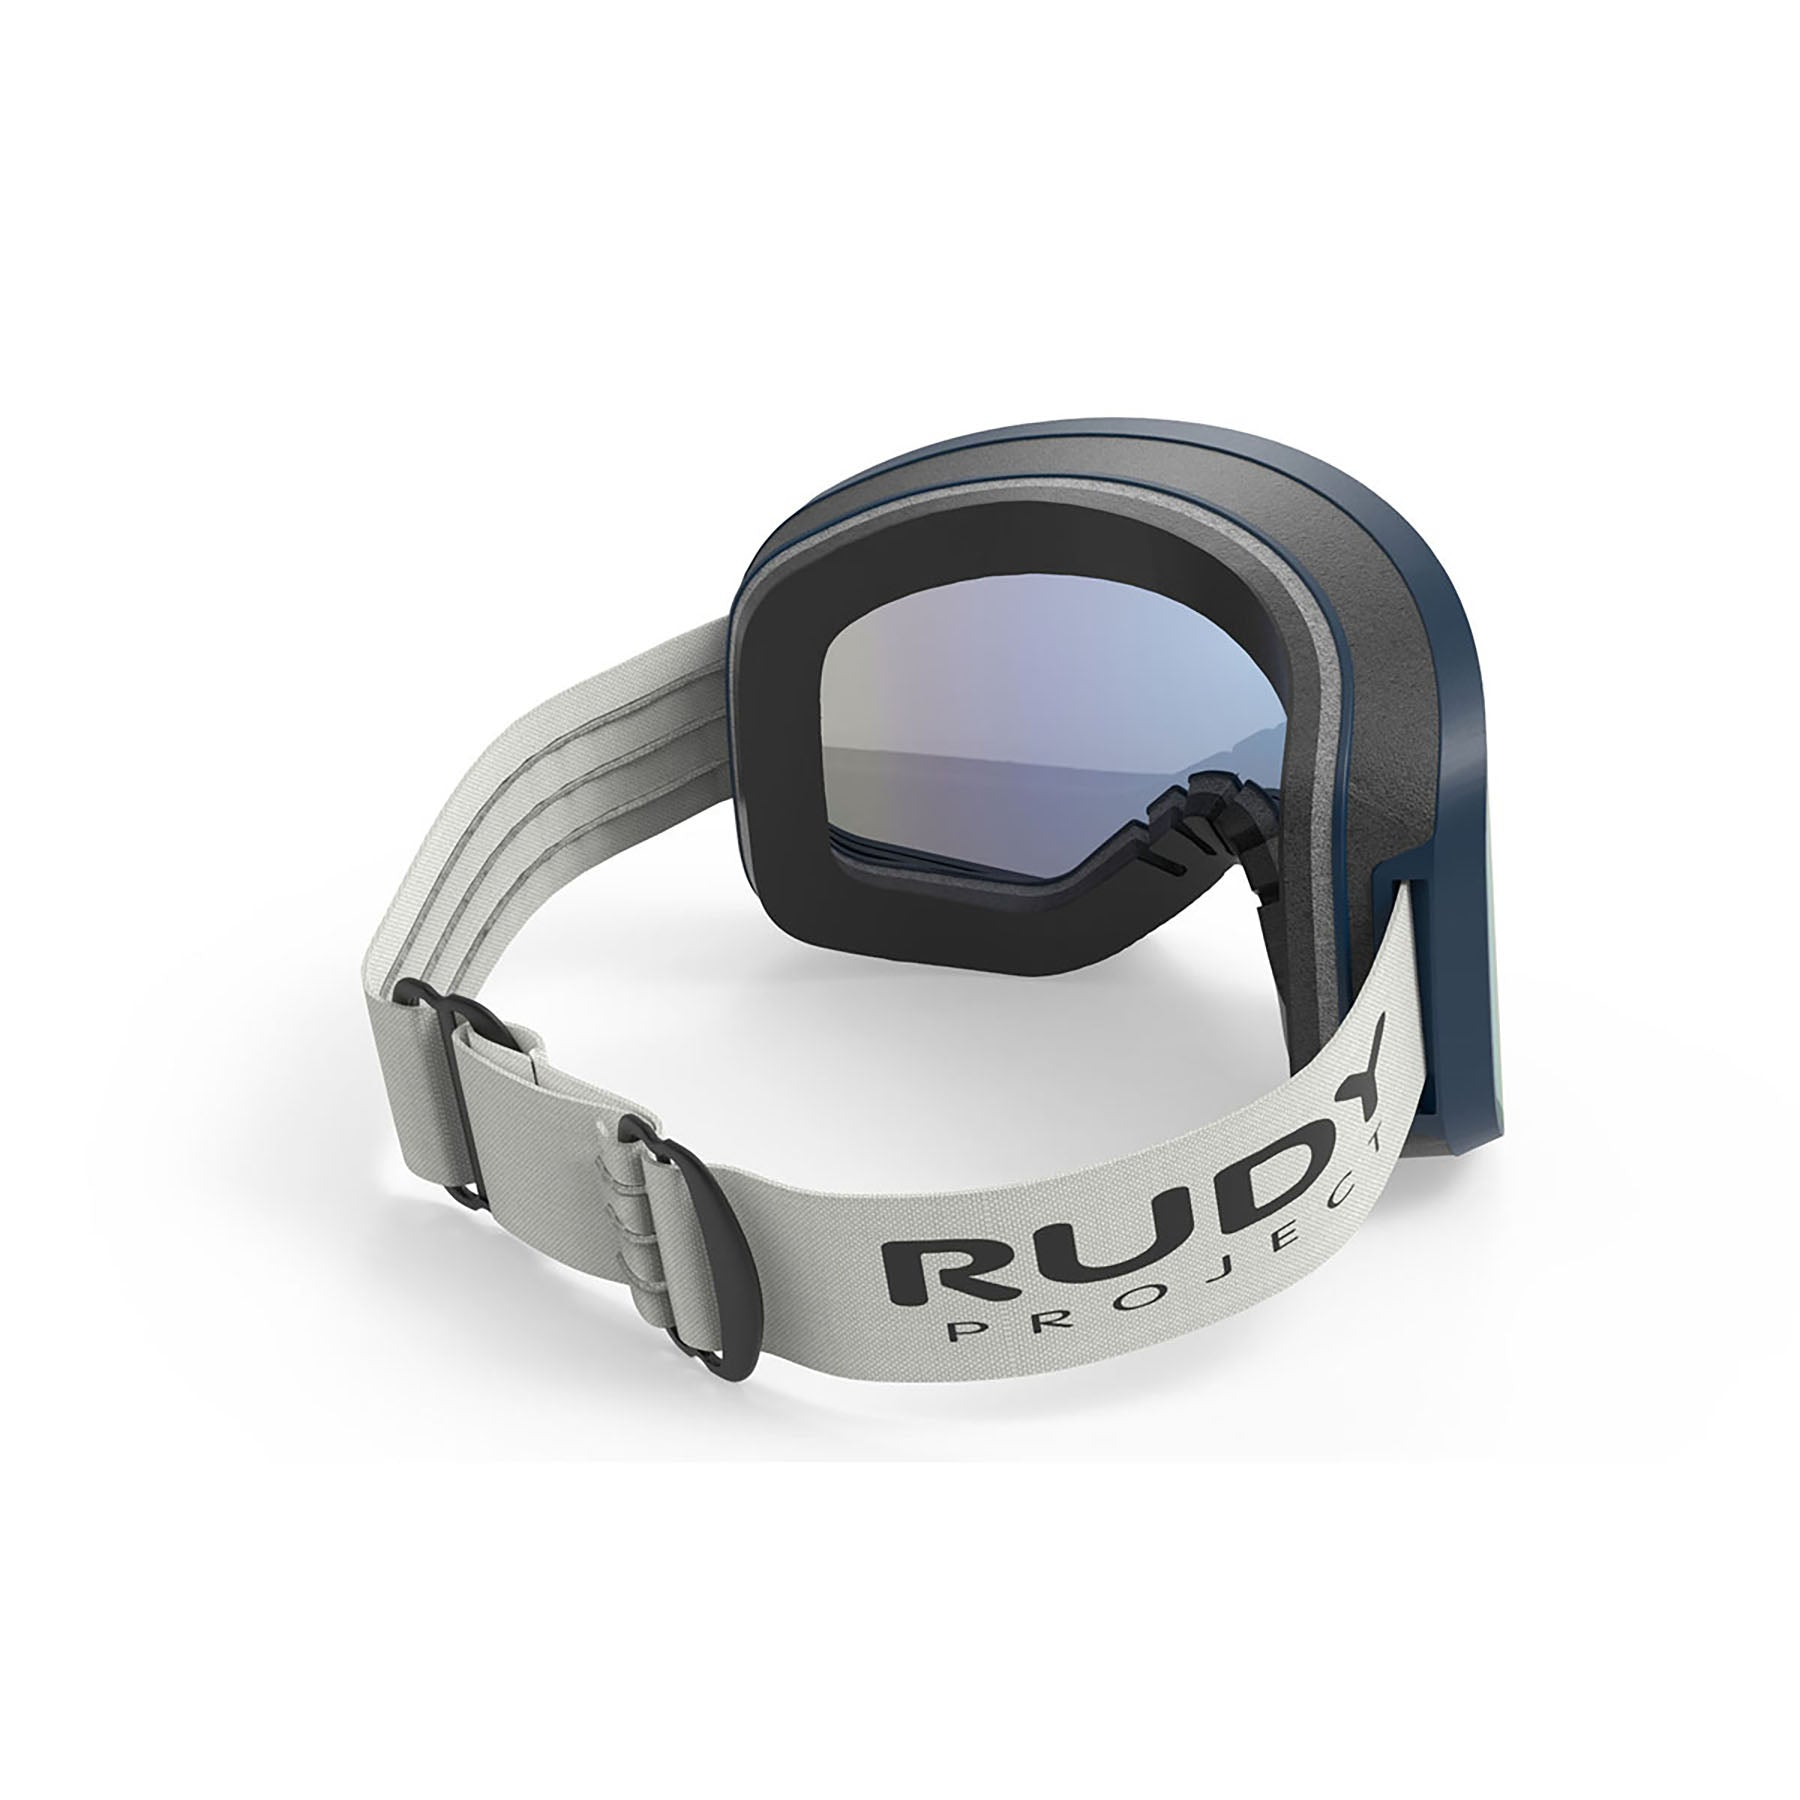 Rudy Project - Skermo - frame color: Deep Blue Matte - lens color: Multilaser Blue